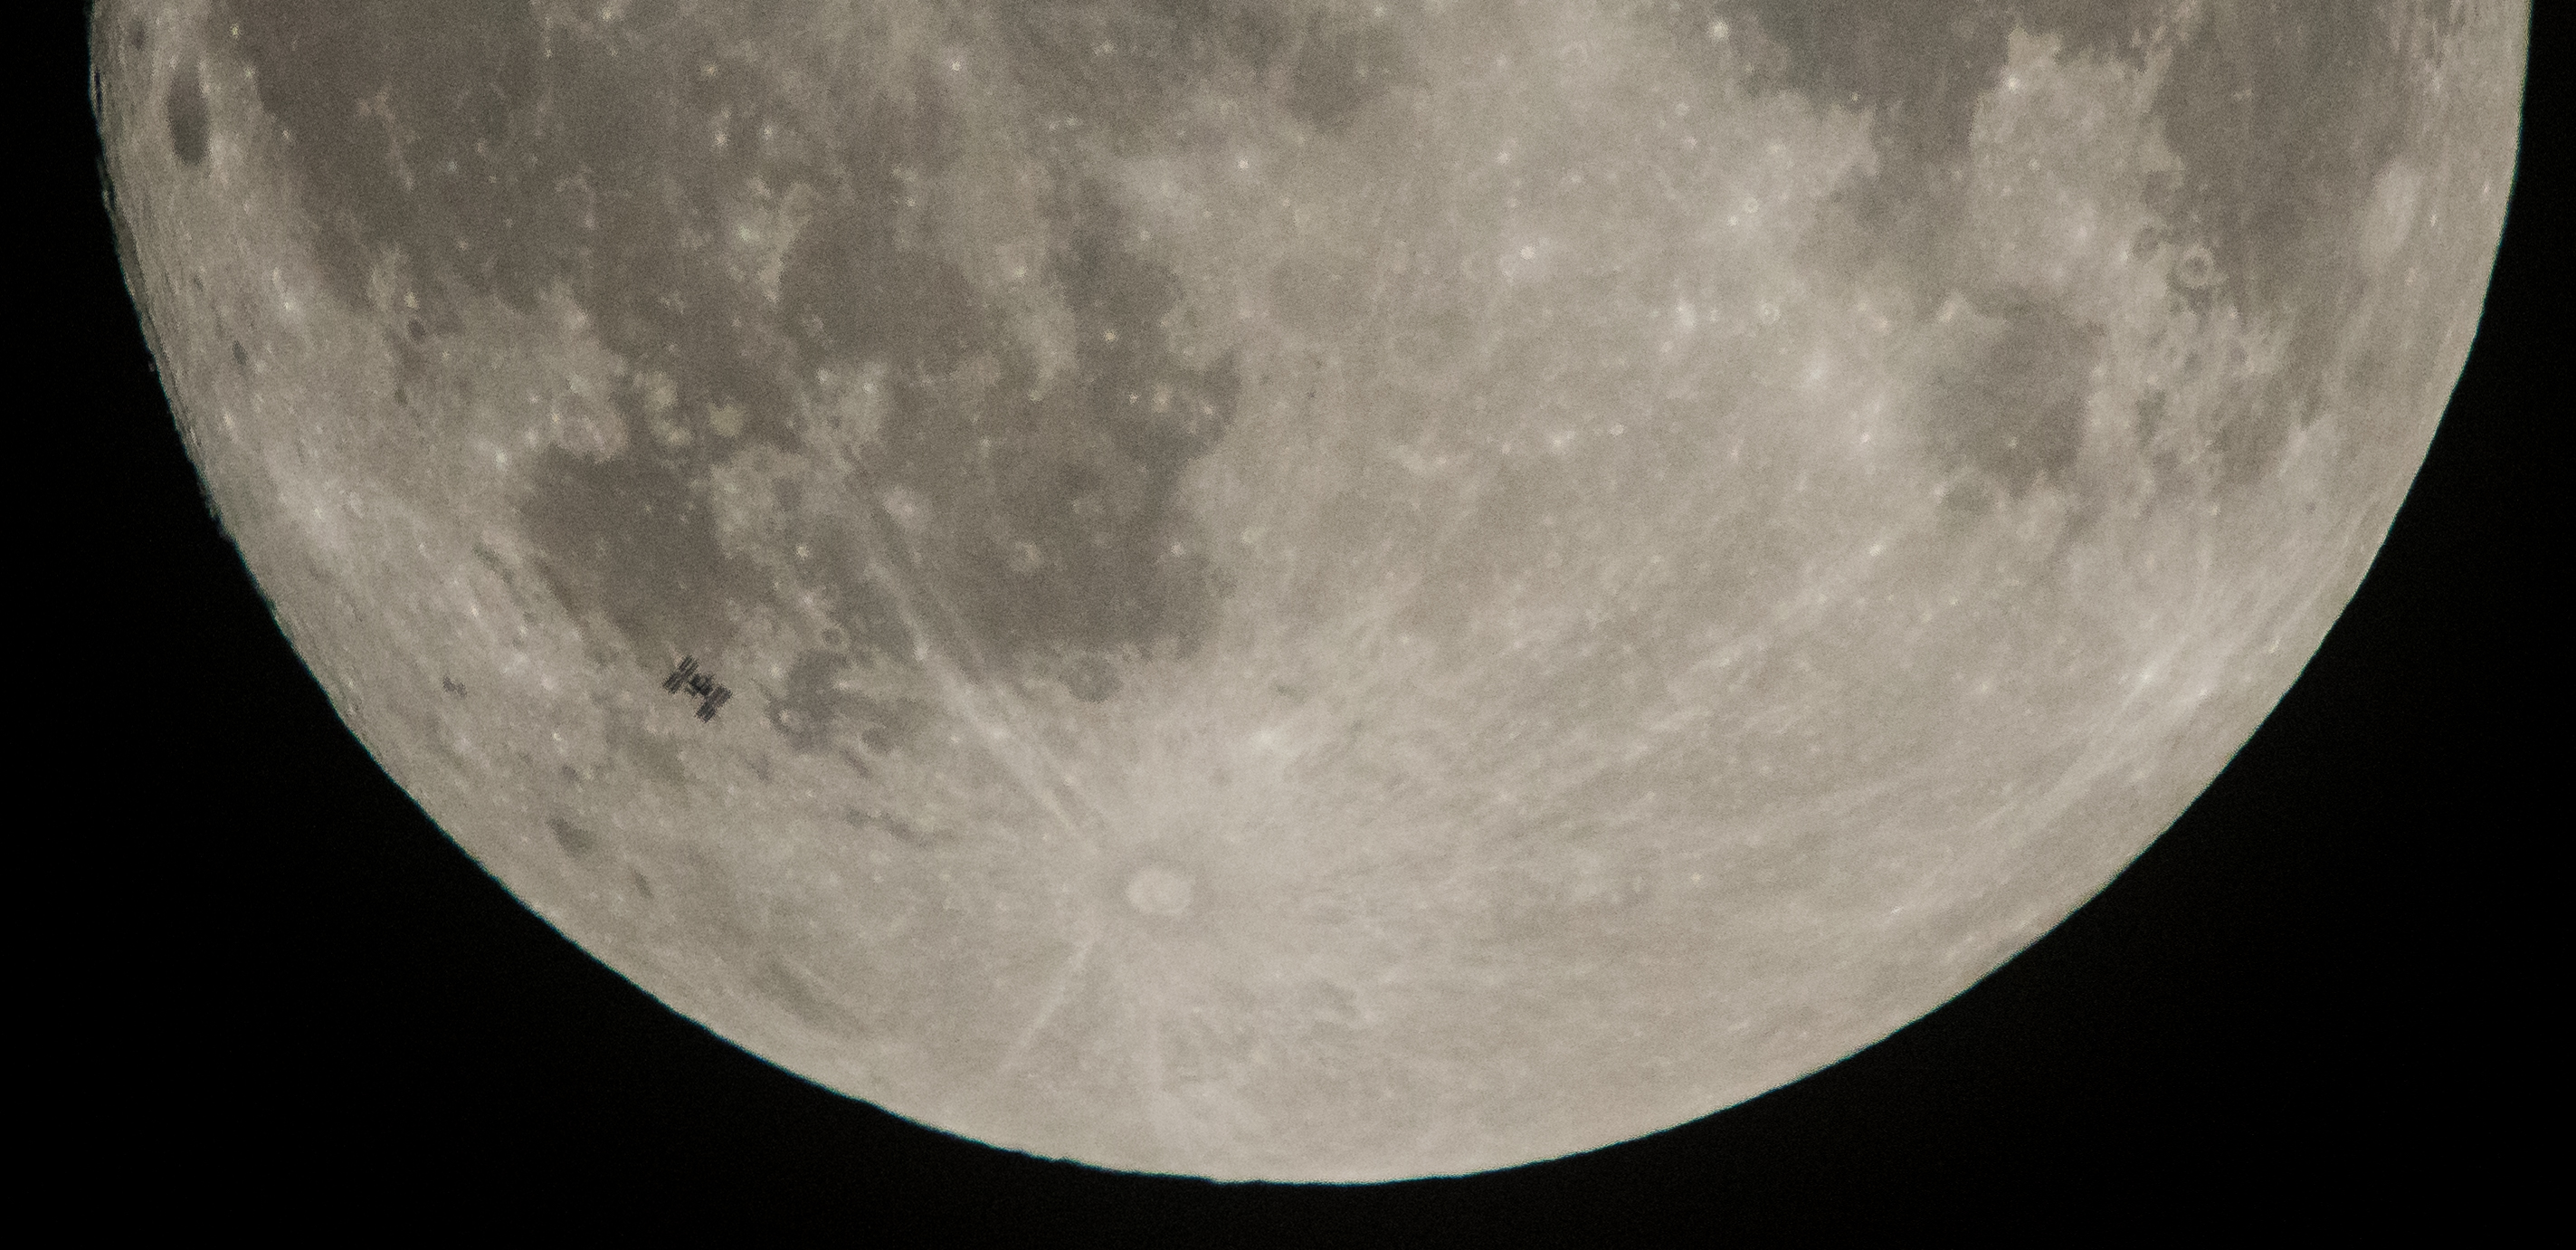 Space Station silhouette in front of Moon.